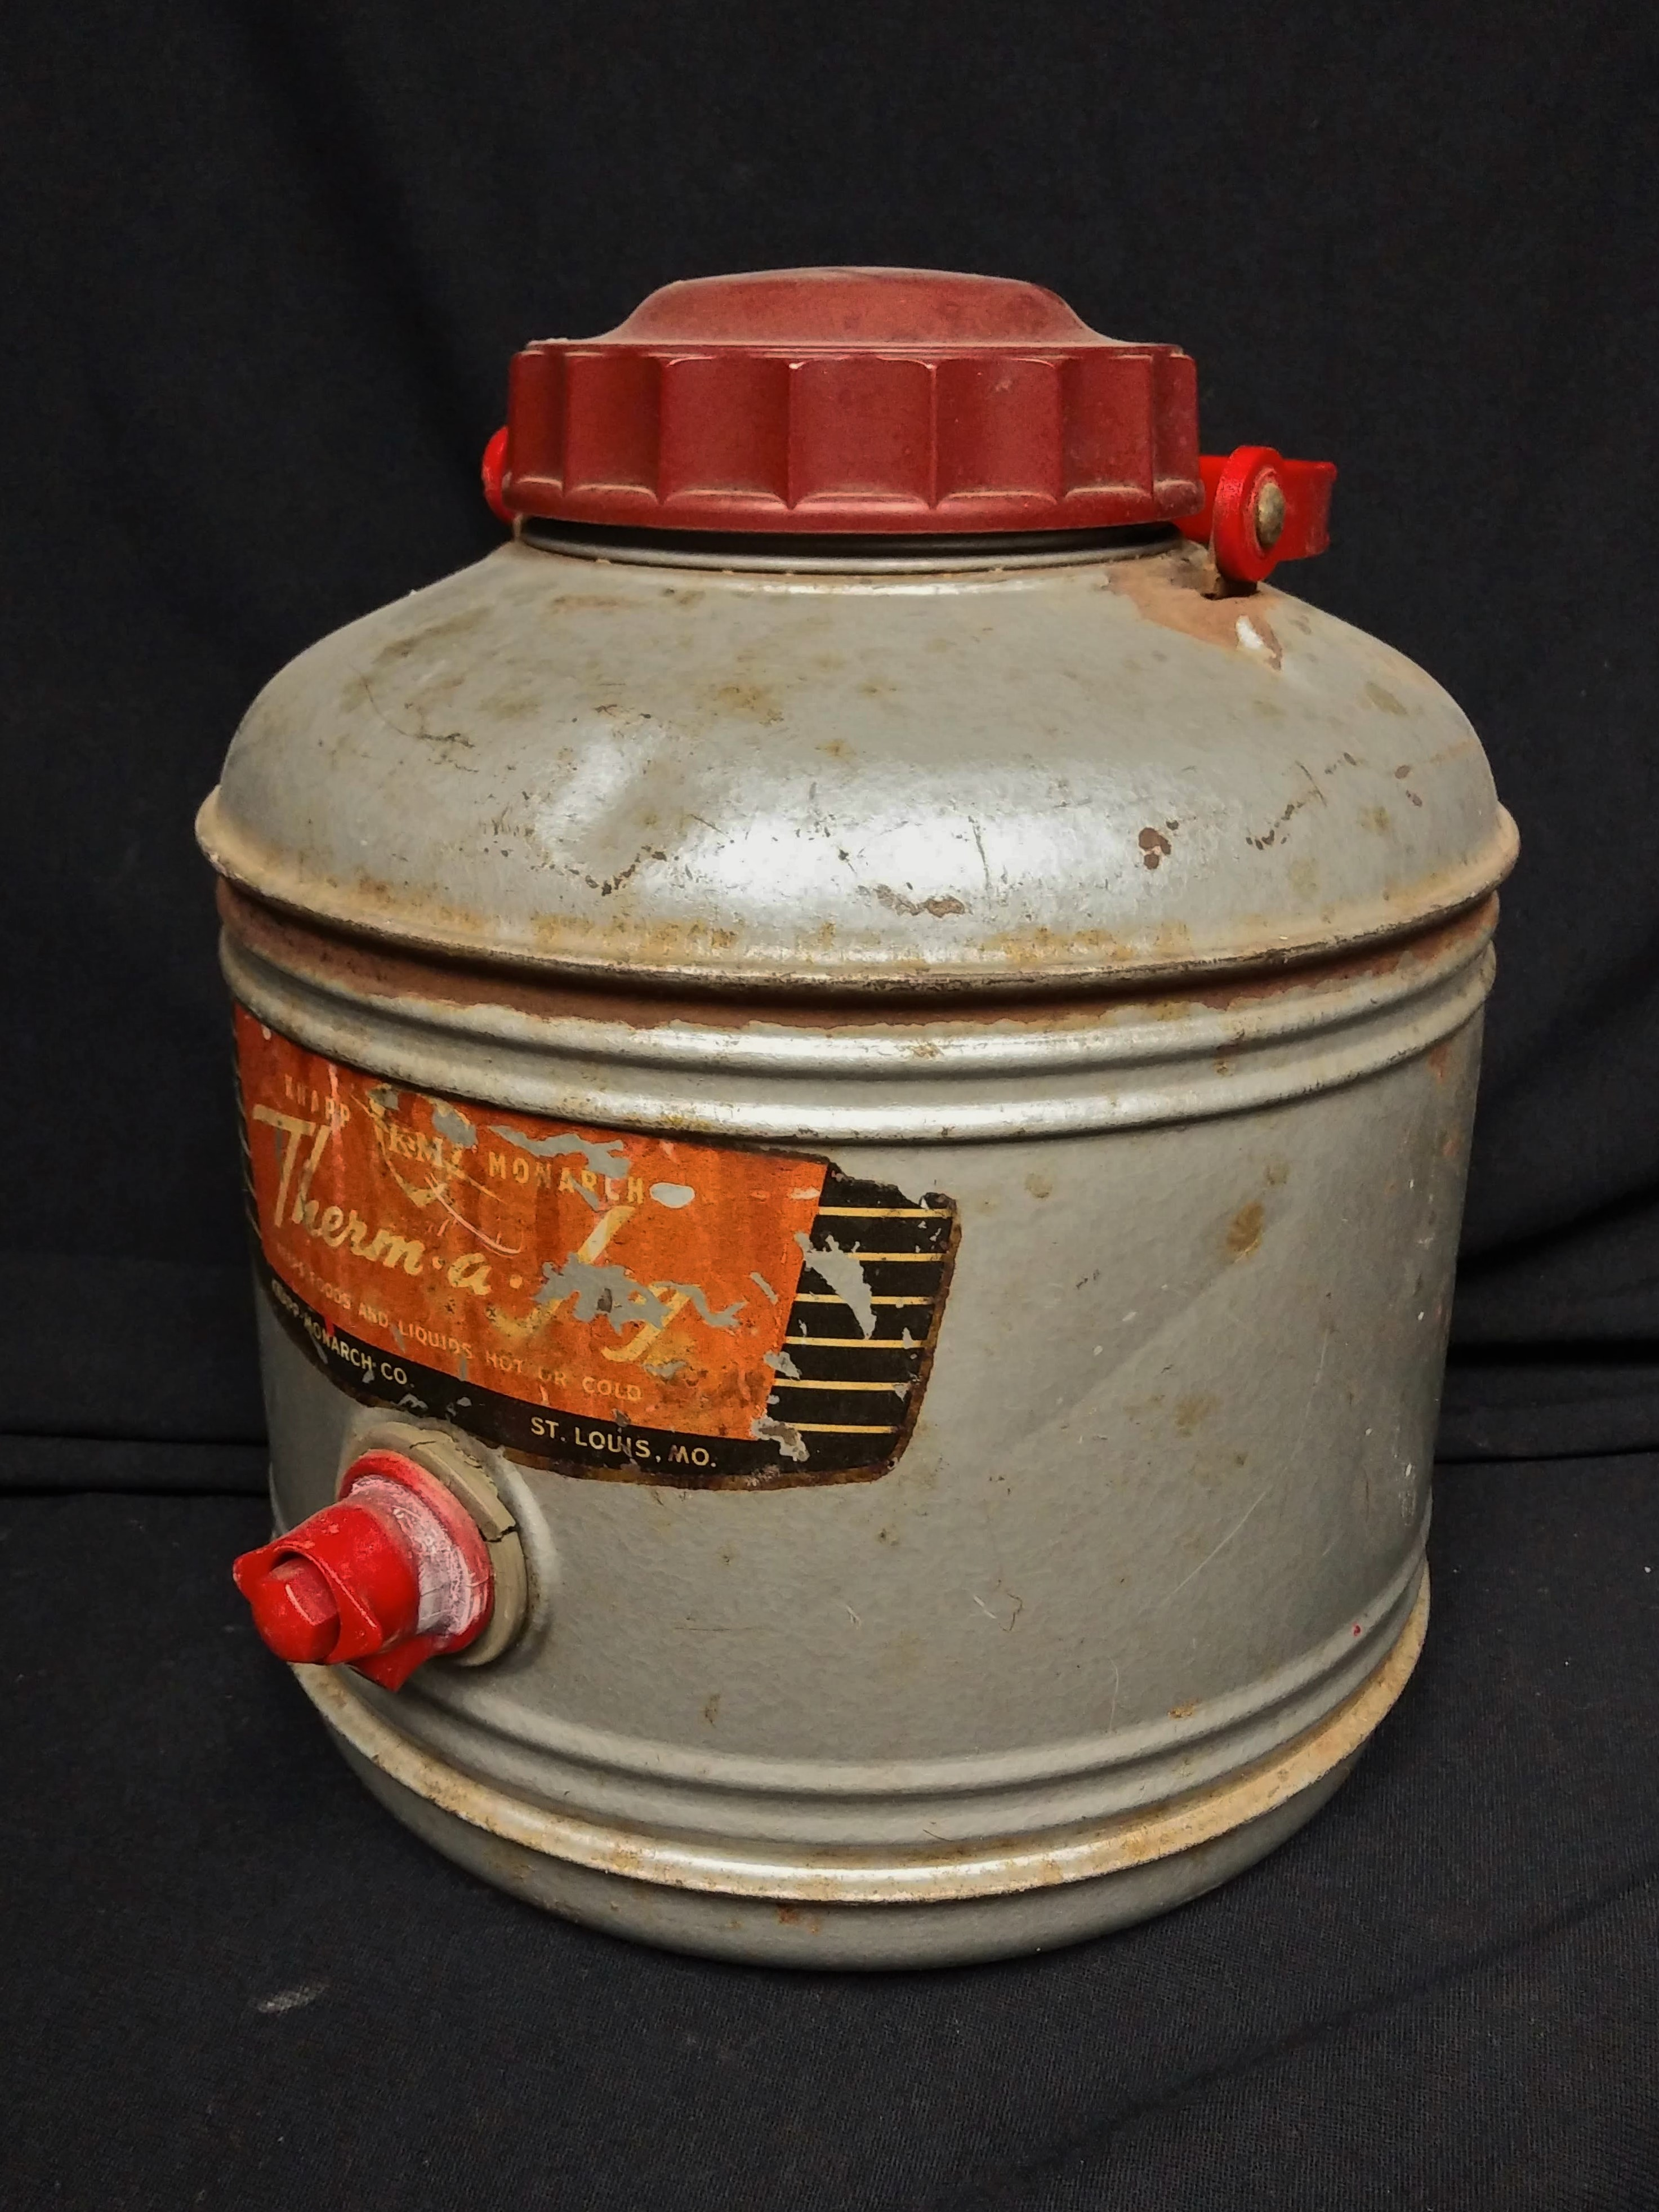 Knapp Monarch Therm-a-Jug Cooler - vintage